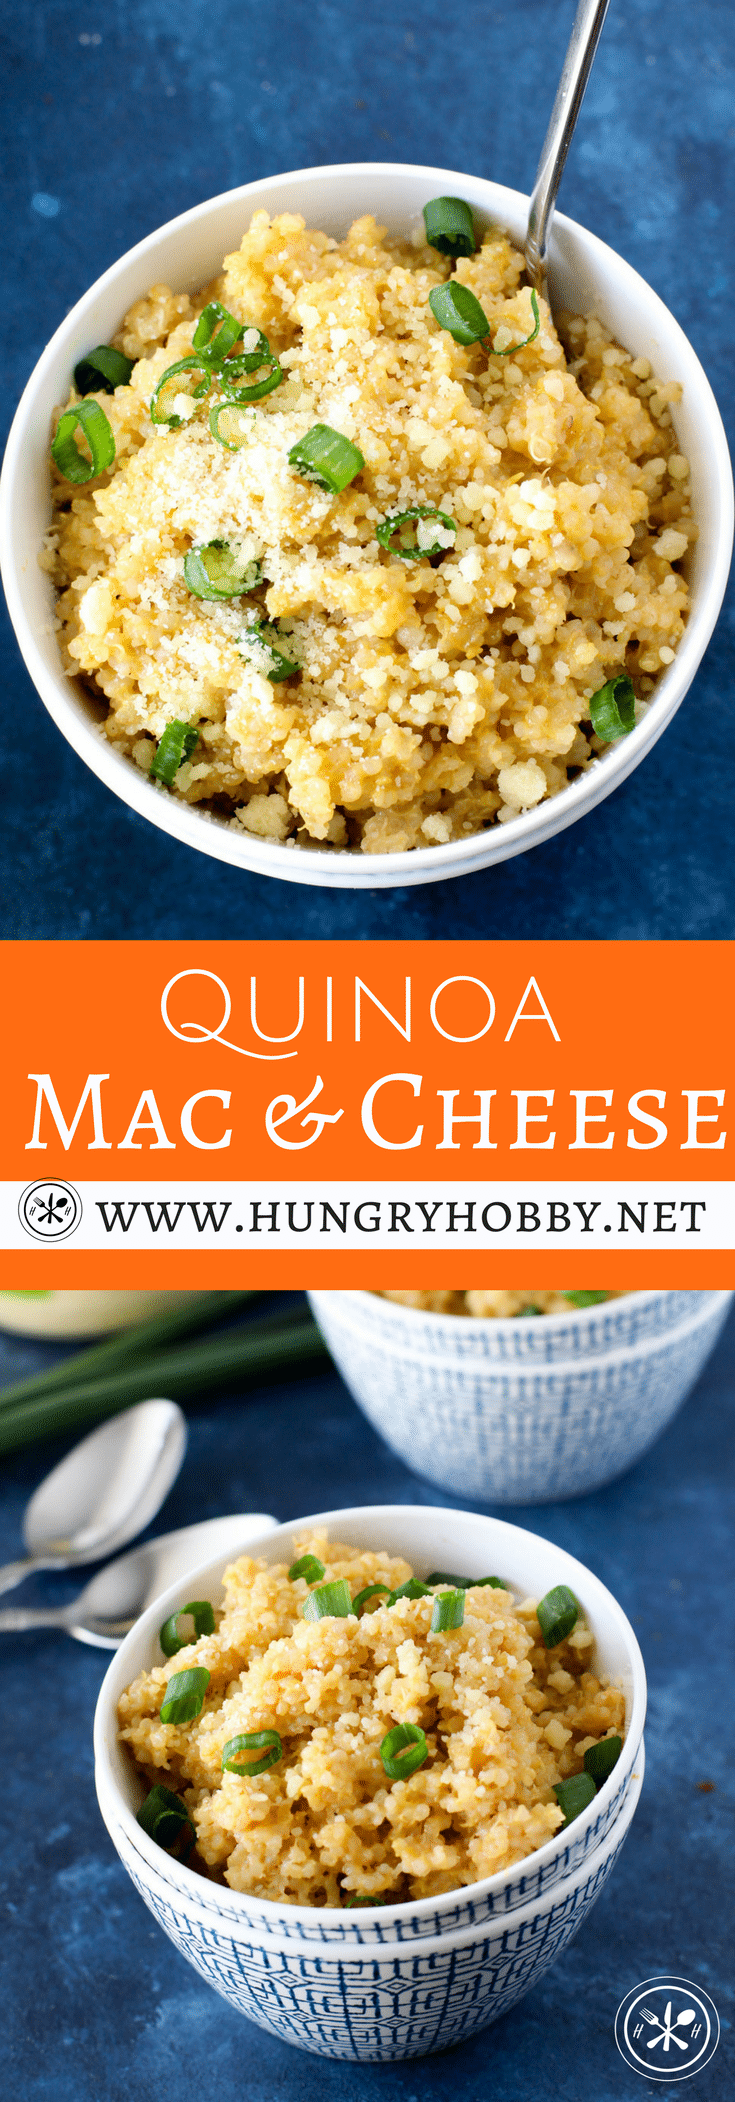 Don't be fooled, just because high protein high fiber quinoa is swapped for traditional pasta, this is your creamy incredibly cheesy mac and cheese of your childhood dreams.  You are sure to swoon with delight at every bite! #glutenfree #hungryhobby #vegetarian